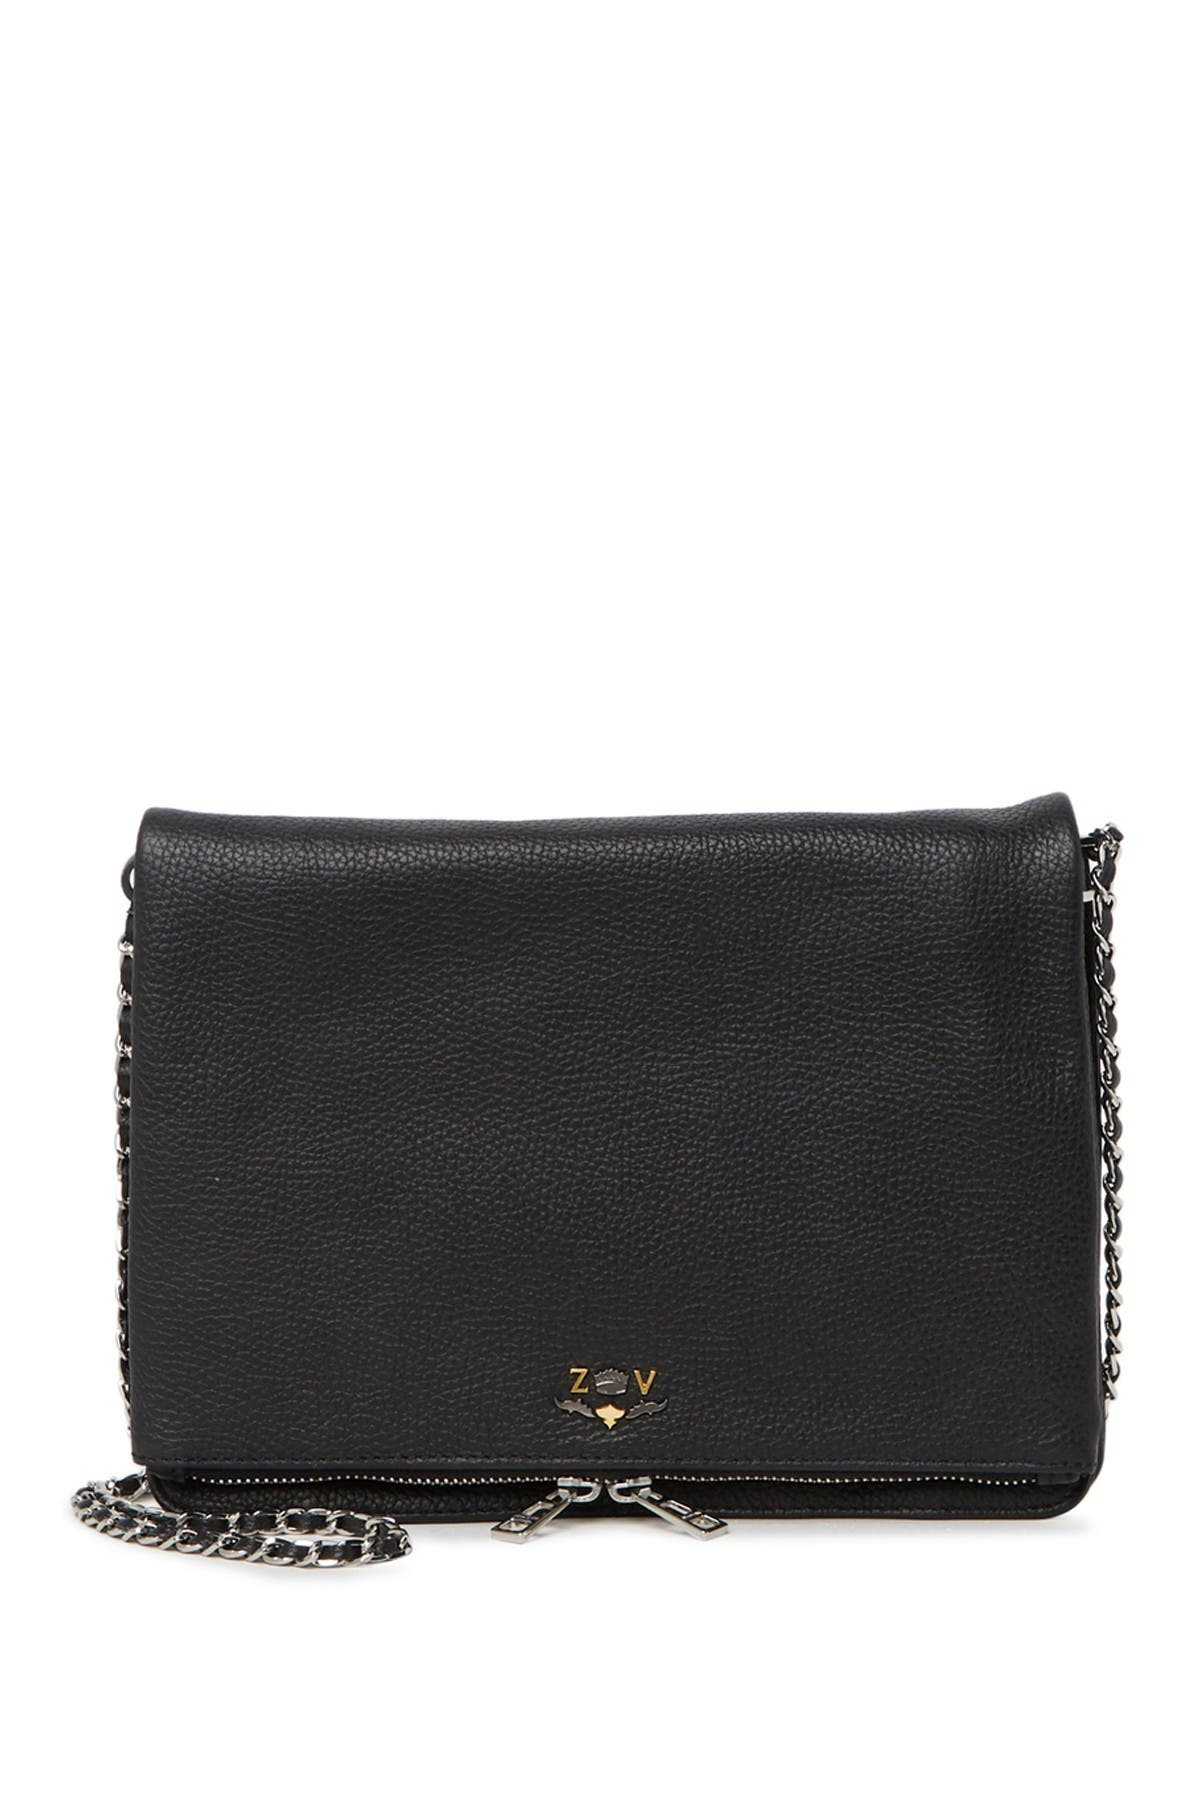 Image of Zadig & Voltaire Rick XL Blason Grained Crossbody Bag